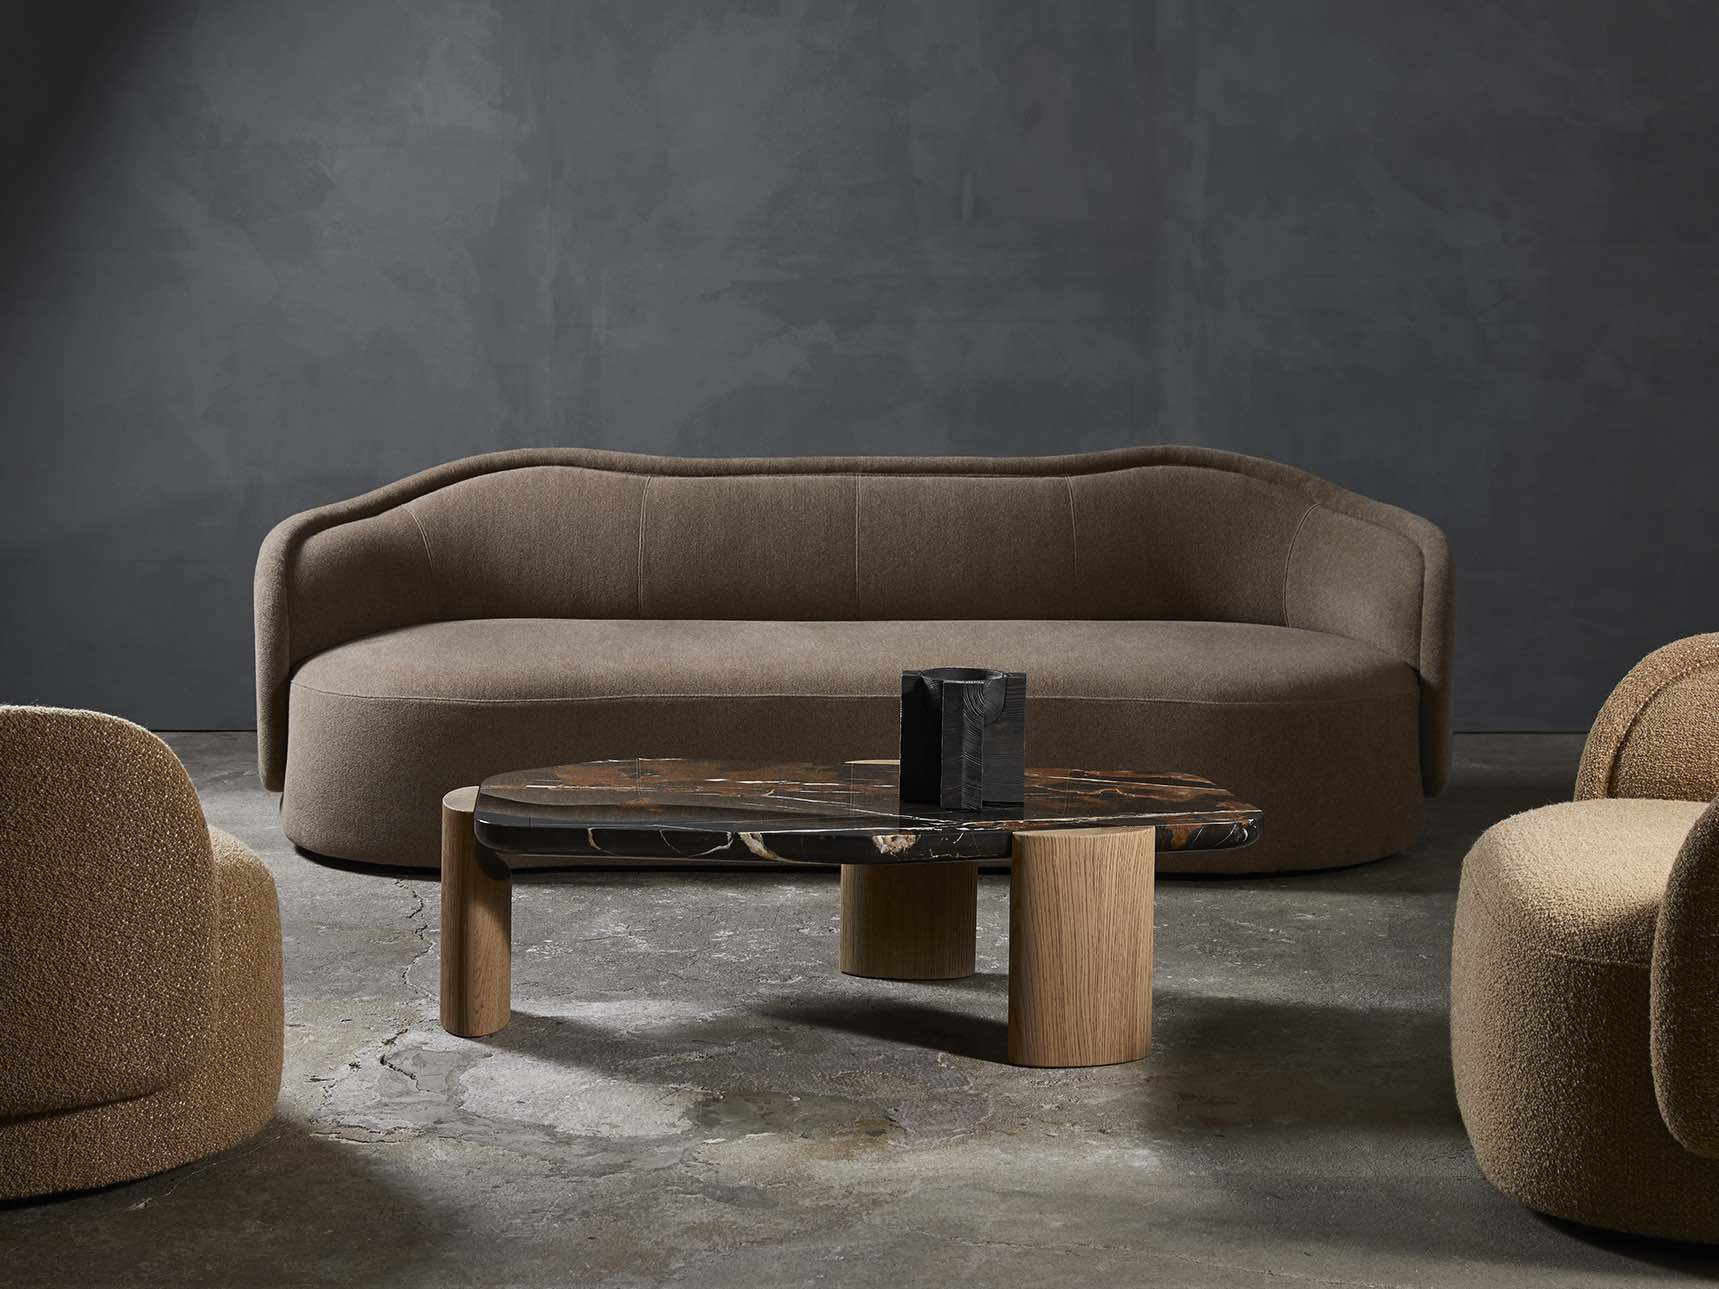 PIA-sofa-armchair-Christophe-Delcourt-Collection_Particuliere